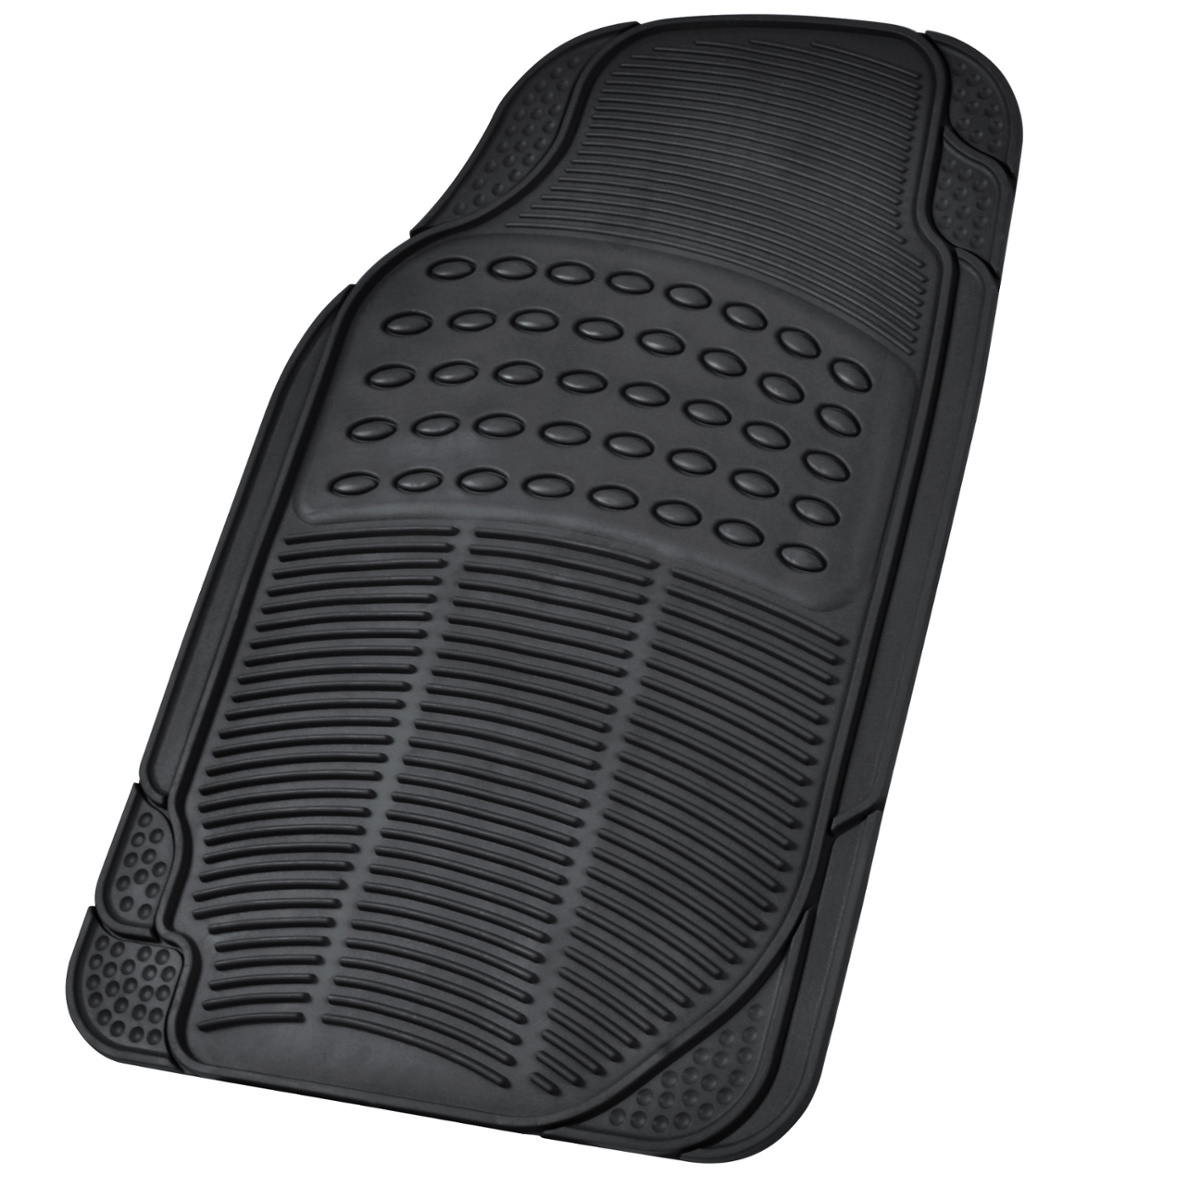 Car Floor Mats For All Weather Rubber Heavy Duty Protection Auto Suv Van 3 Pcs Ebay